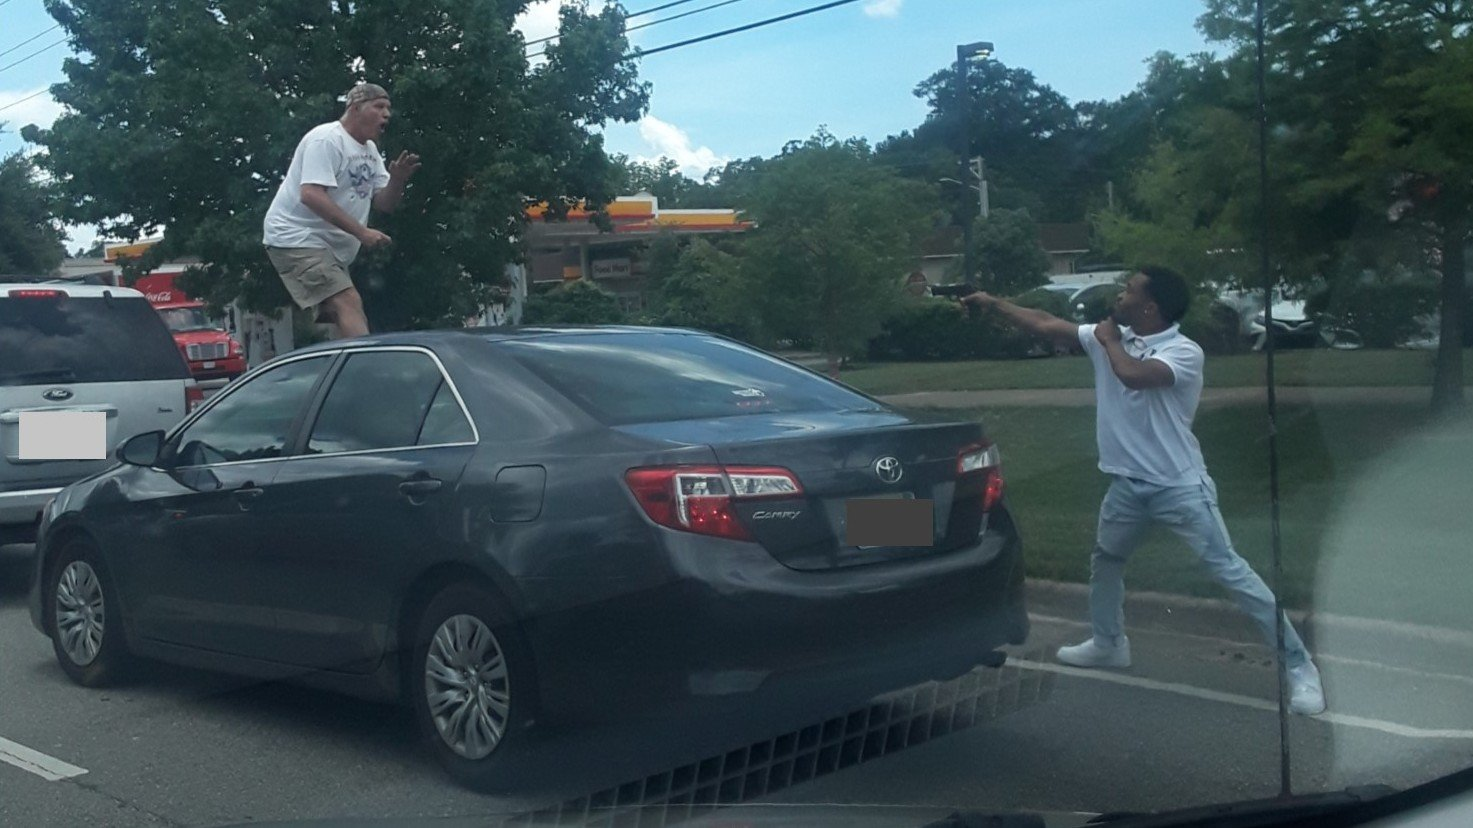 A passerby caught this photo of the scene between Mayo and another driver on 98 in Fairhope yesterday.